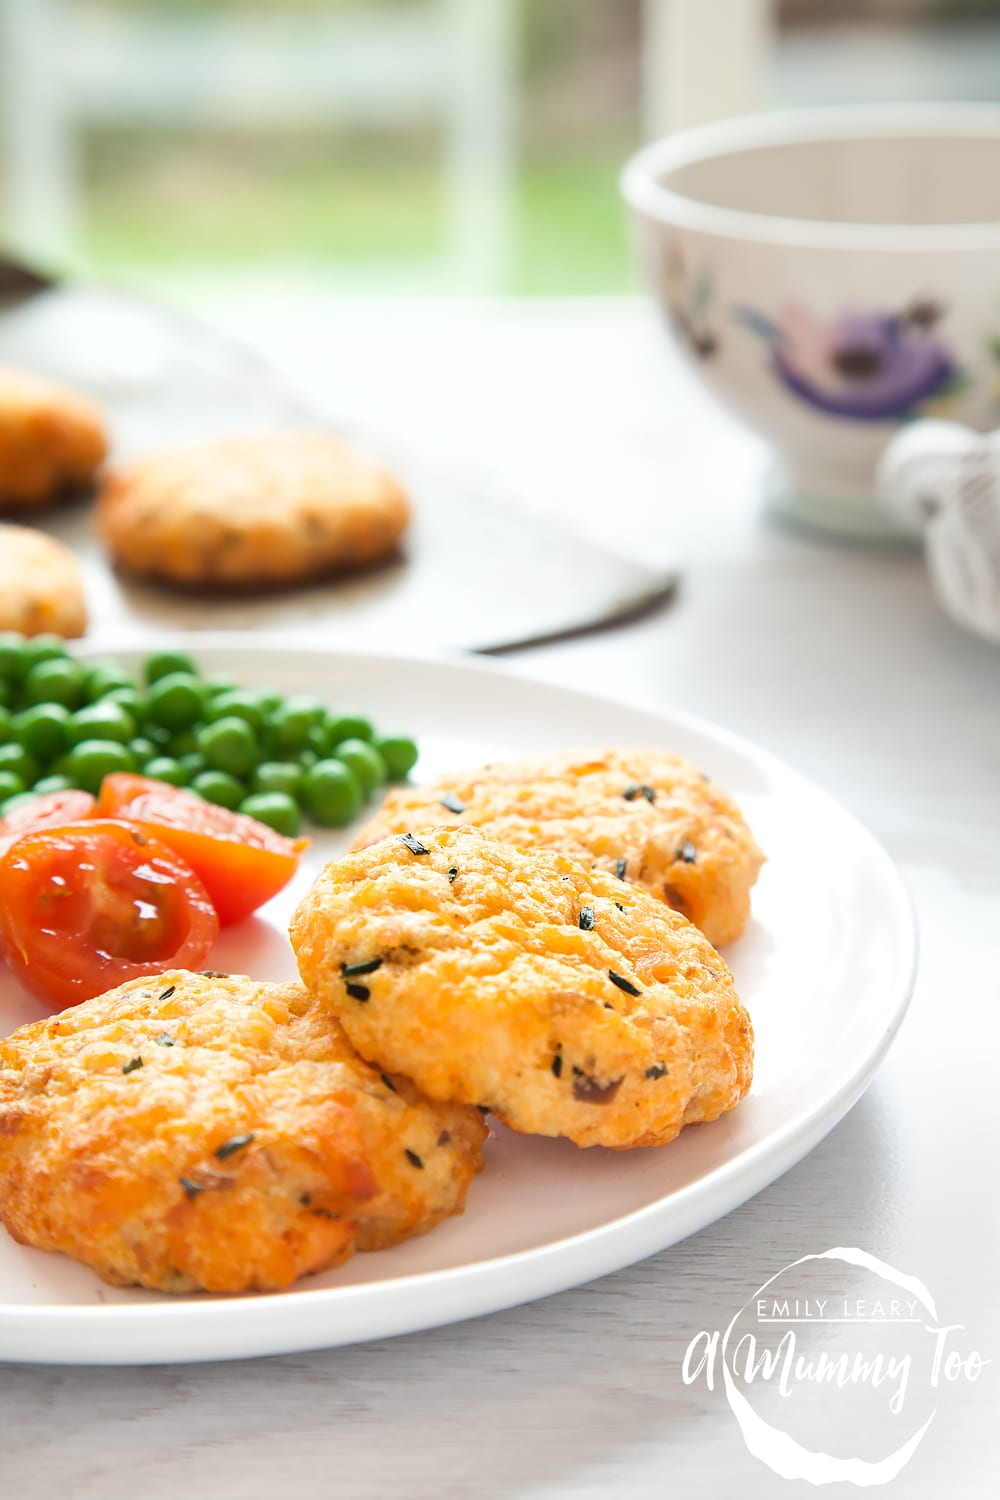 Easy, homemade salmon fishcakes and no need to crumb them first! Great recipe to make with kids. And they're baked not fried!